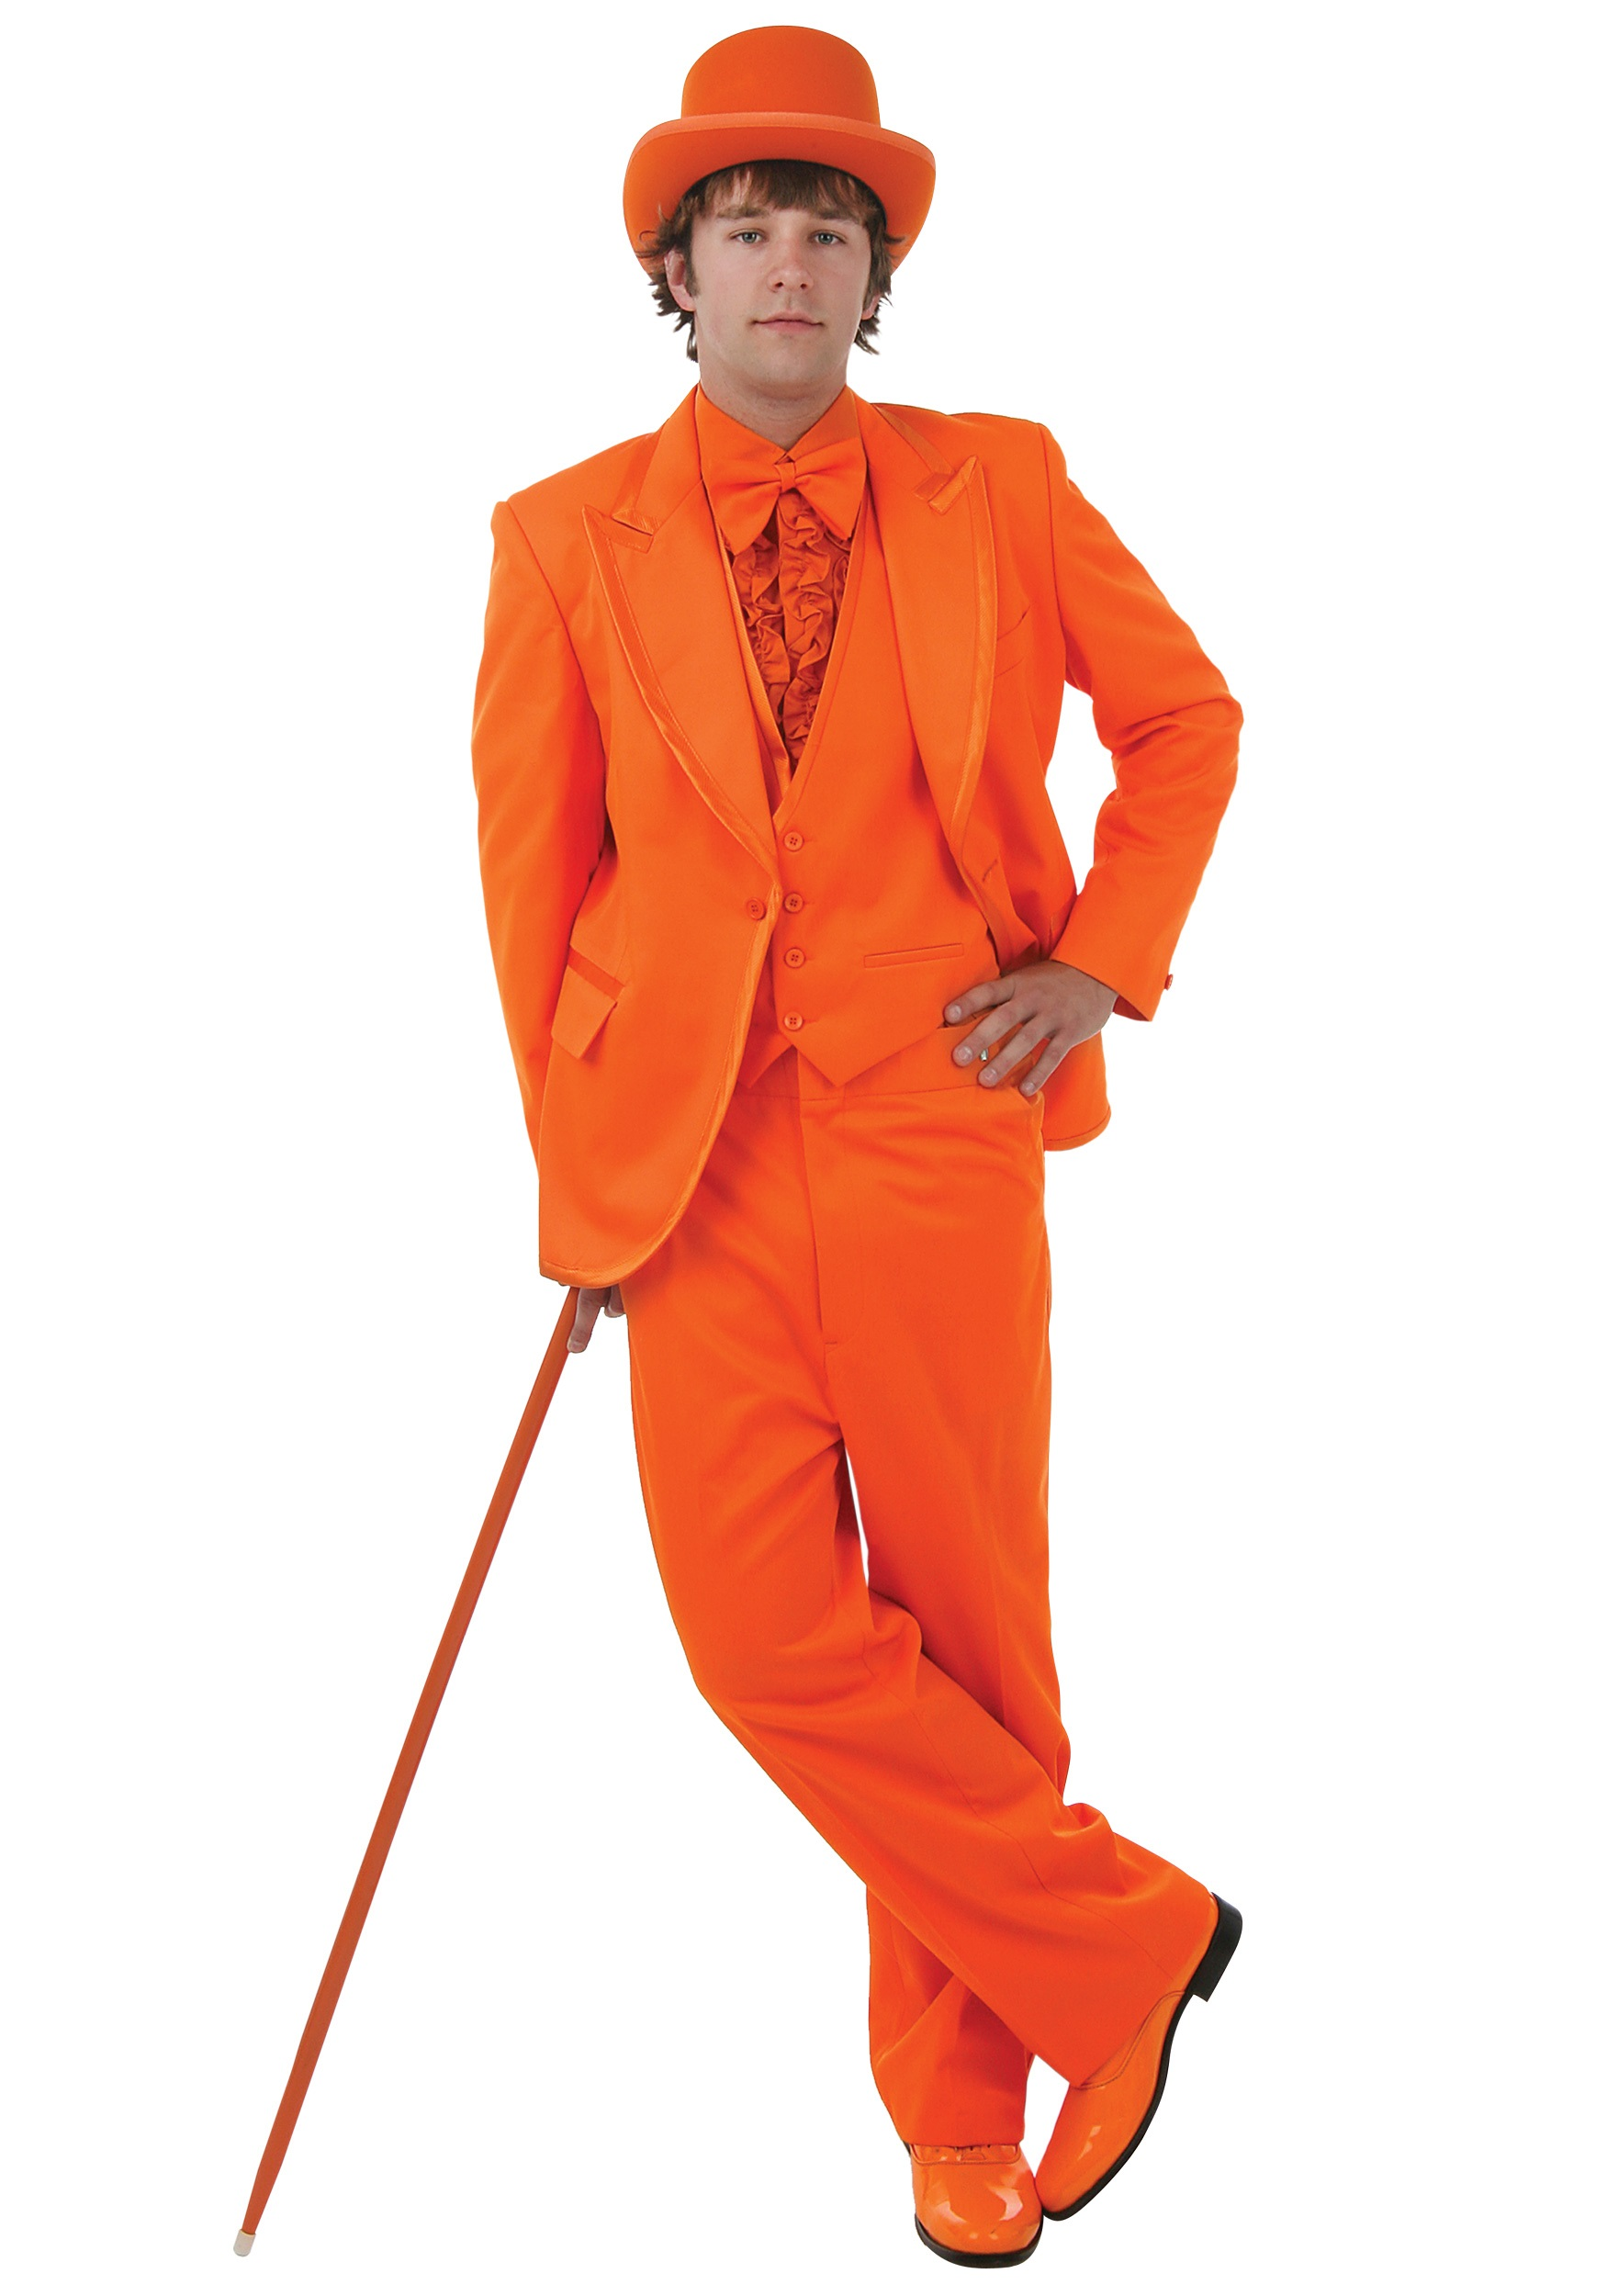 Deluxe Orange Tuxedo - Tux for Prom